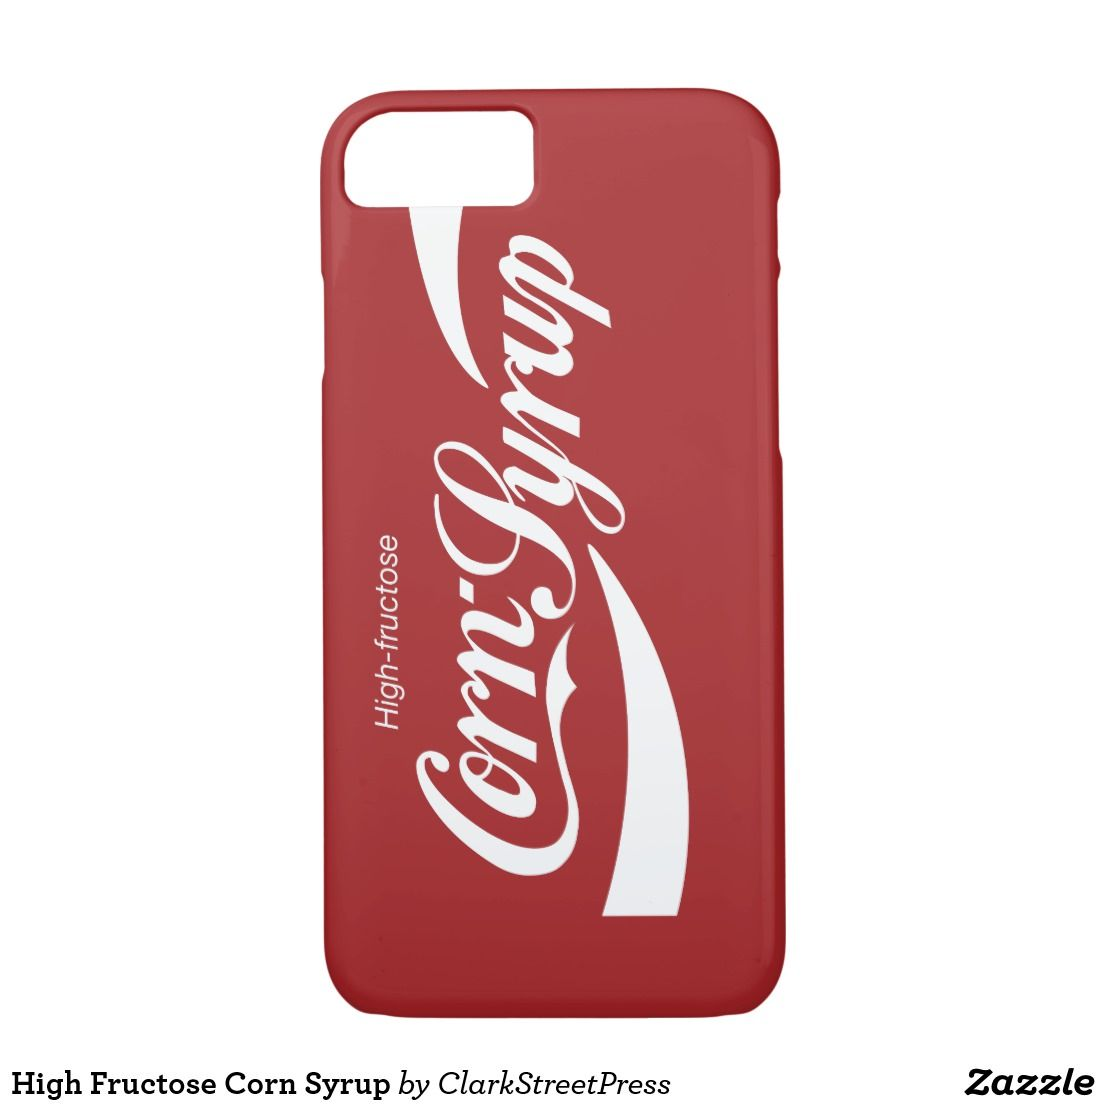 High fructose corn syrup iphone 87 case iphone case